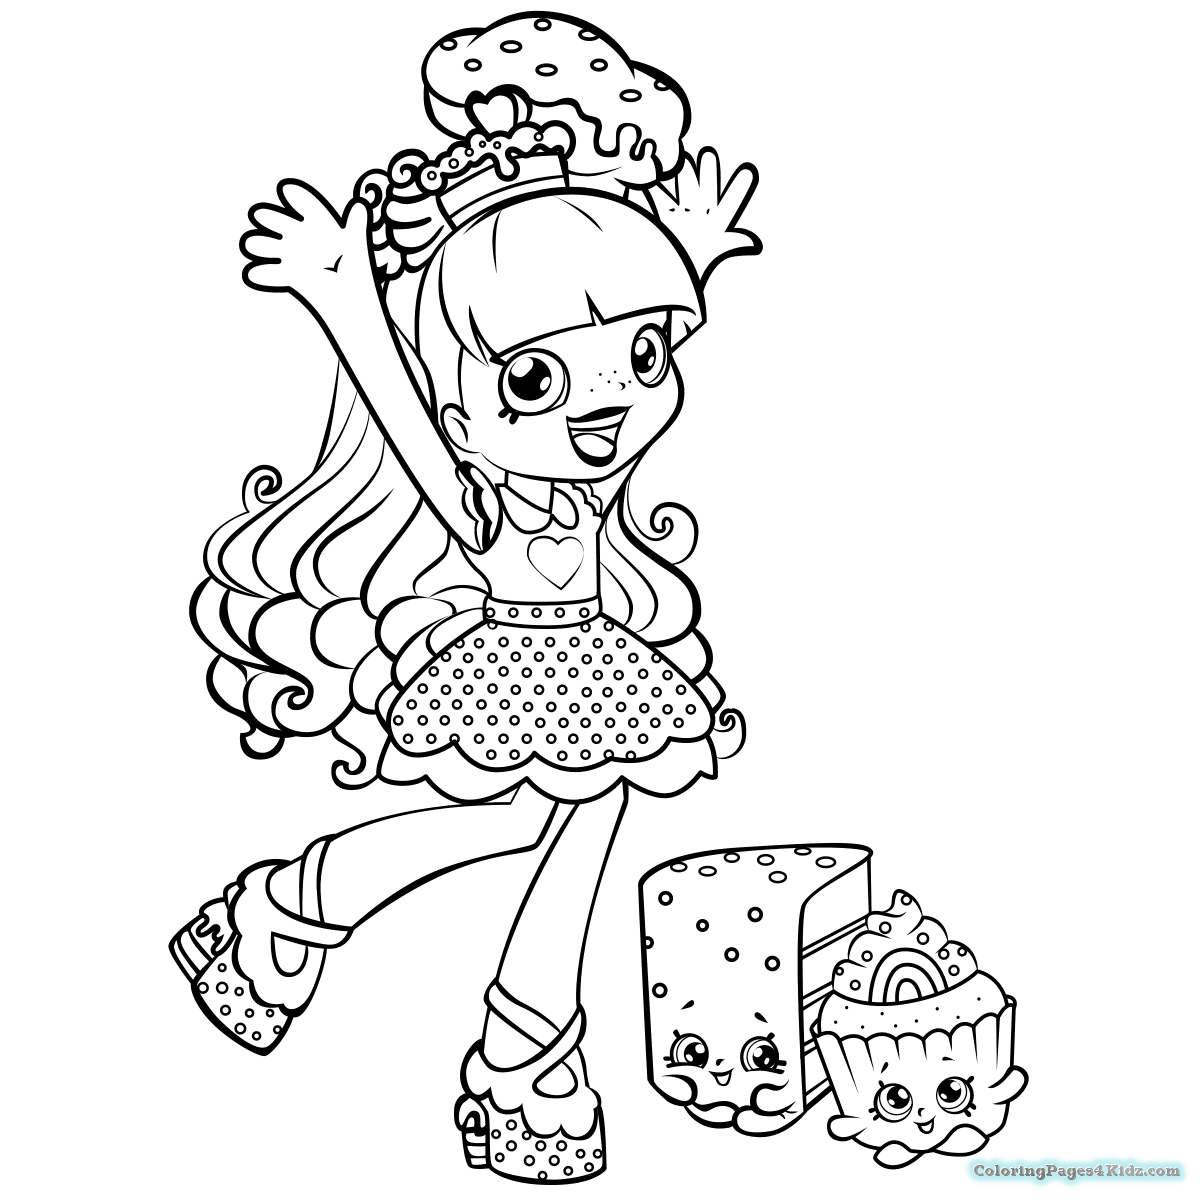 1200x1200 Shopkins Shoppies Coloring Pages Coloring Pages For Kids